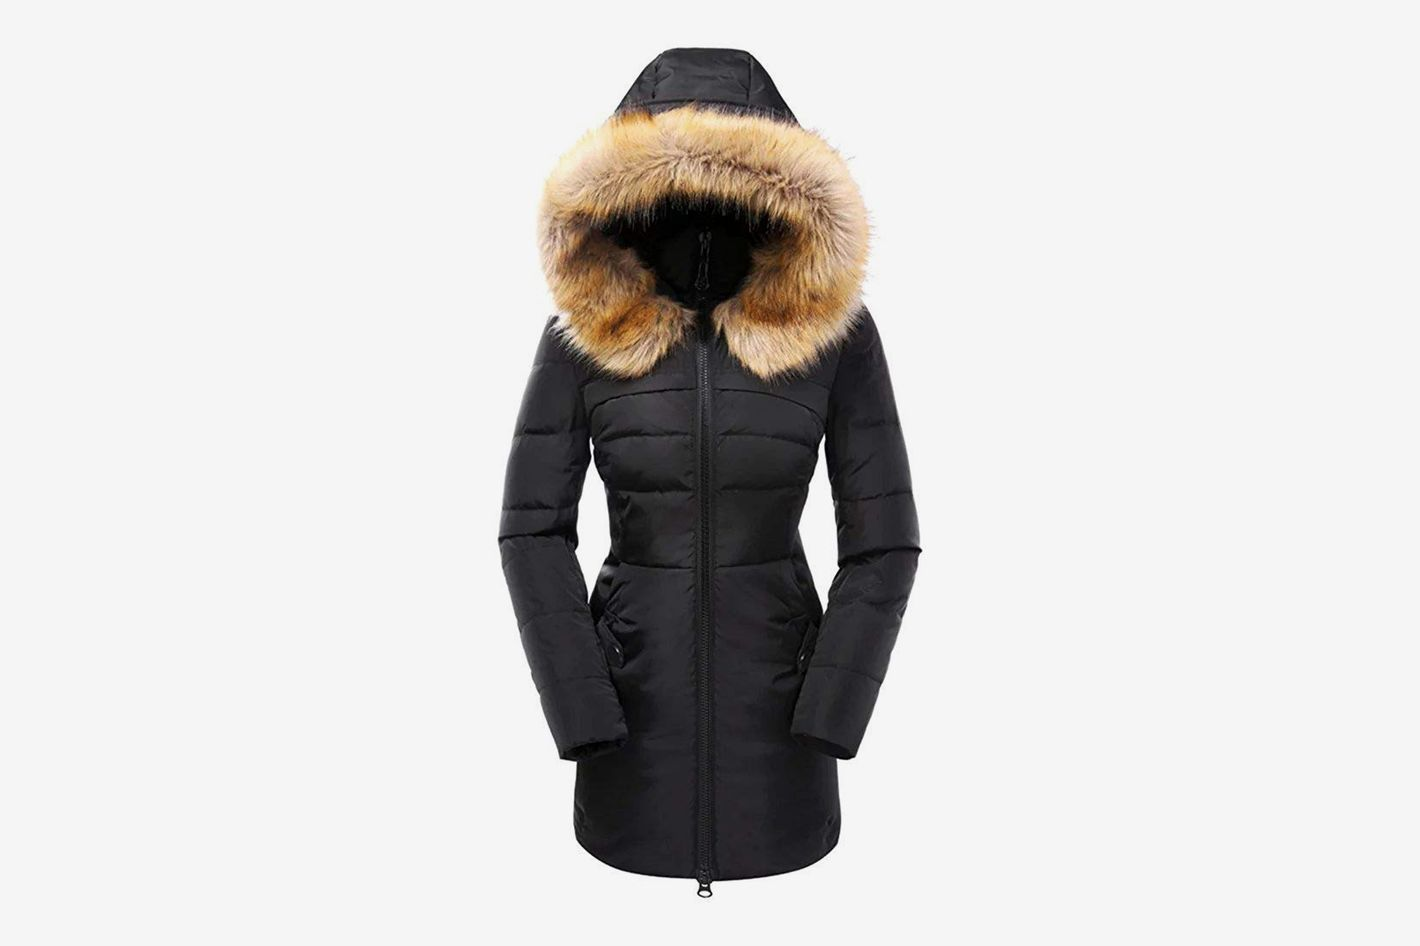 de34fe5ef2dc Beinia Valuker Women's Down Coat with Fur Hood